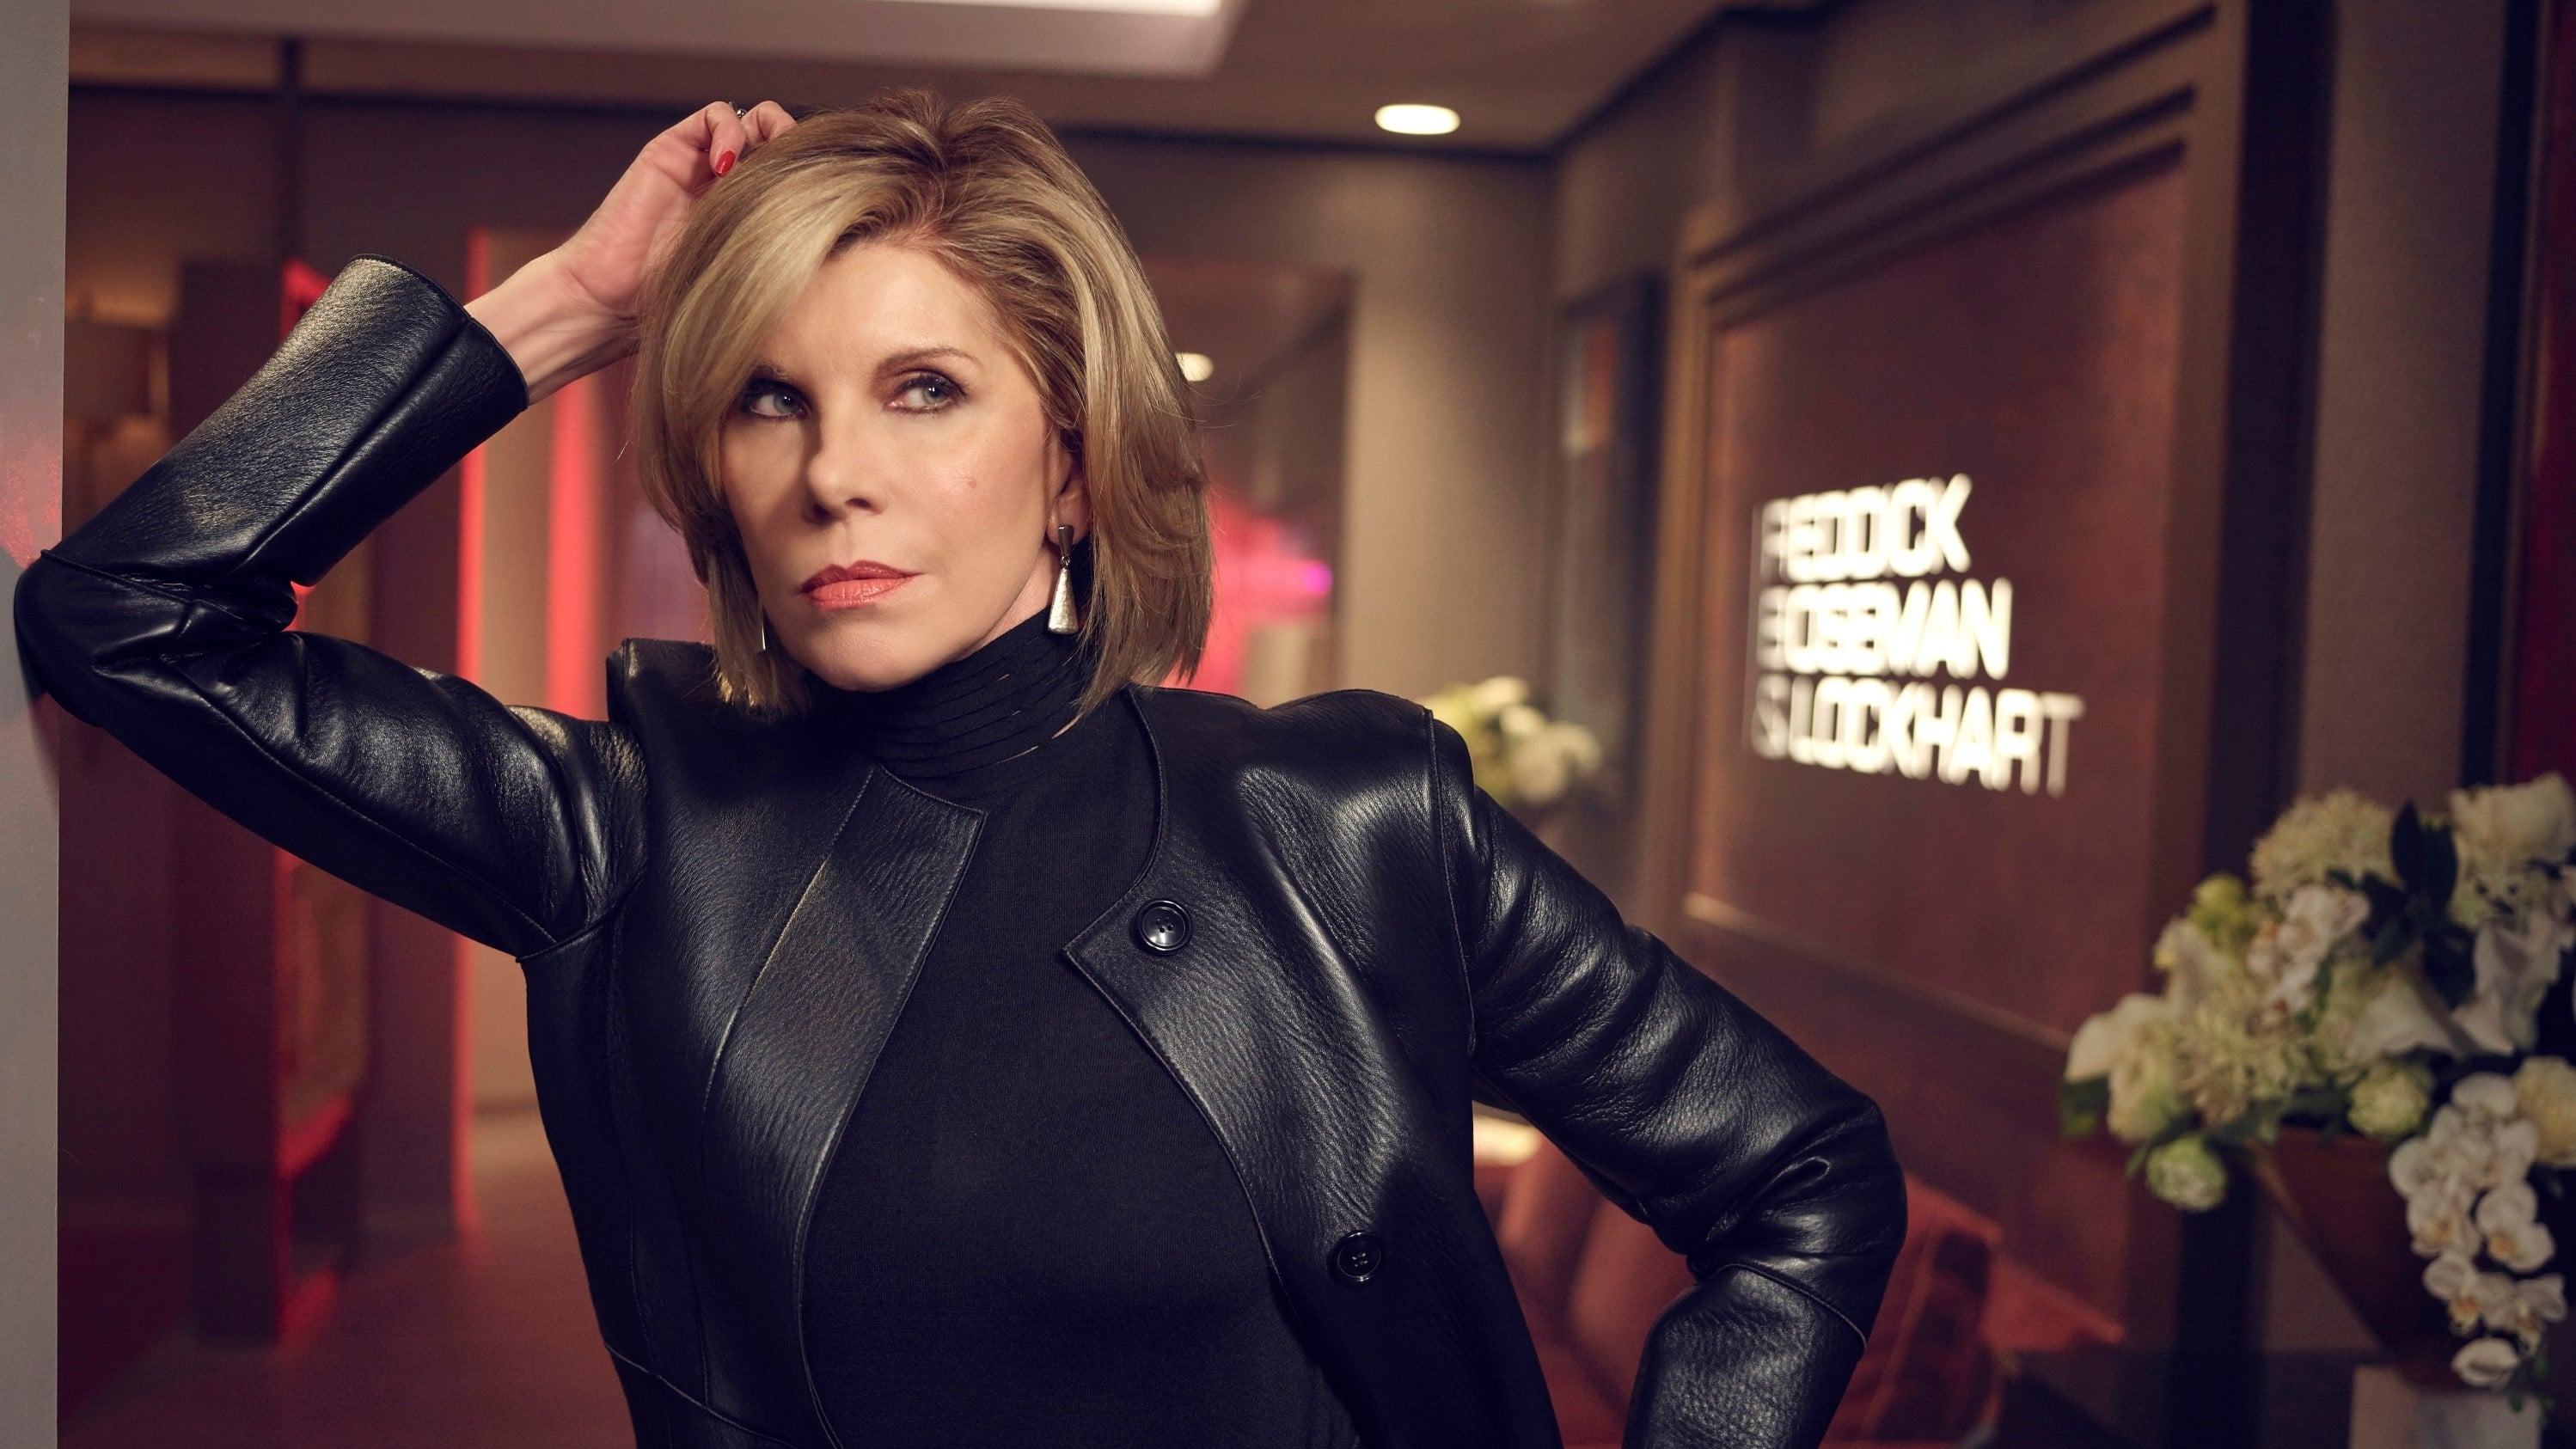 Vijfde seizoen The Good Fight eind juni in première